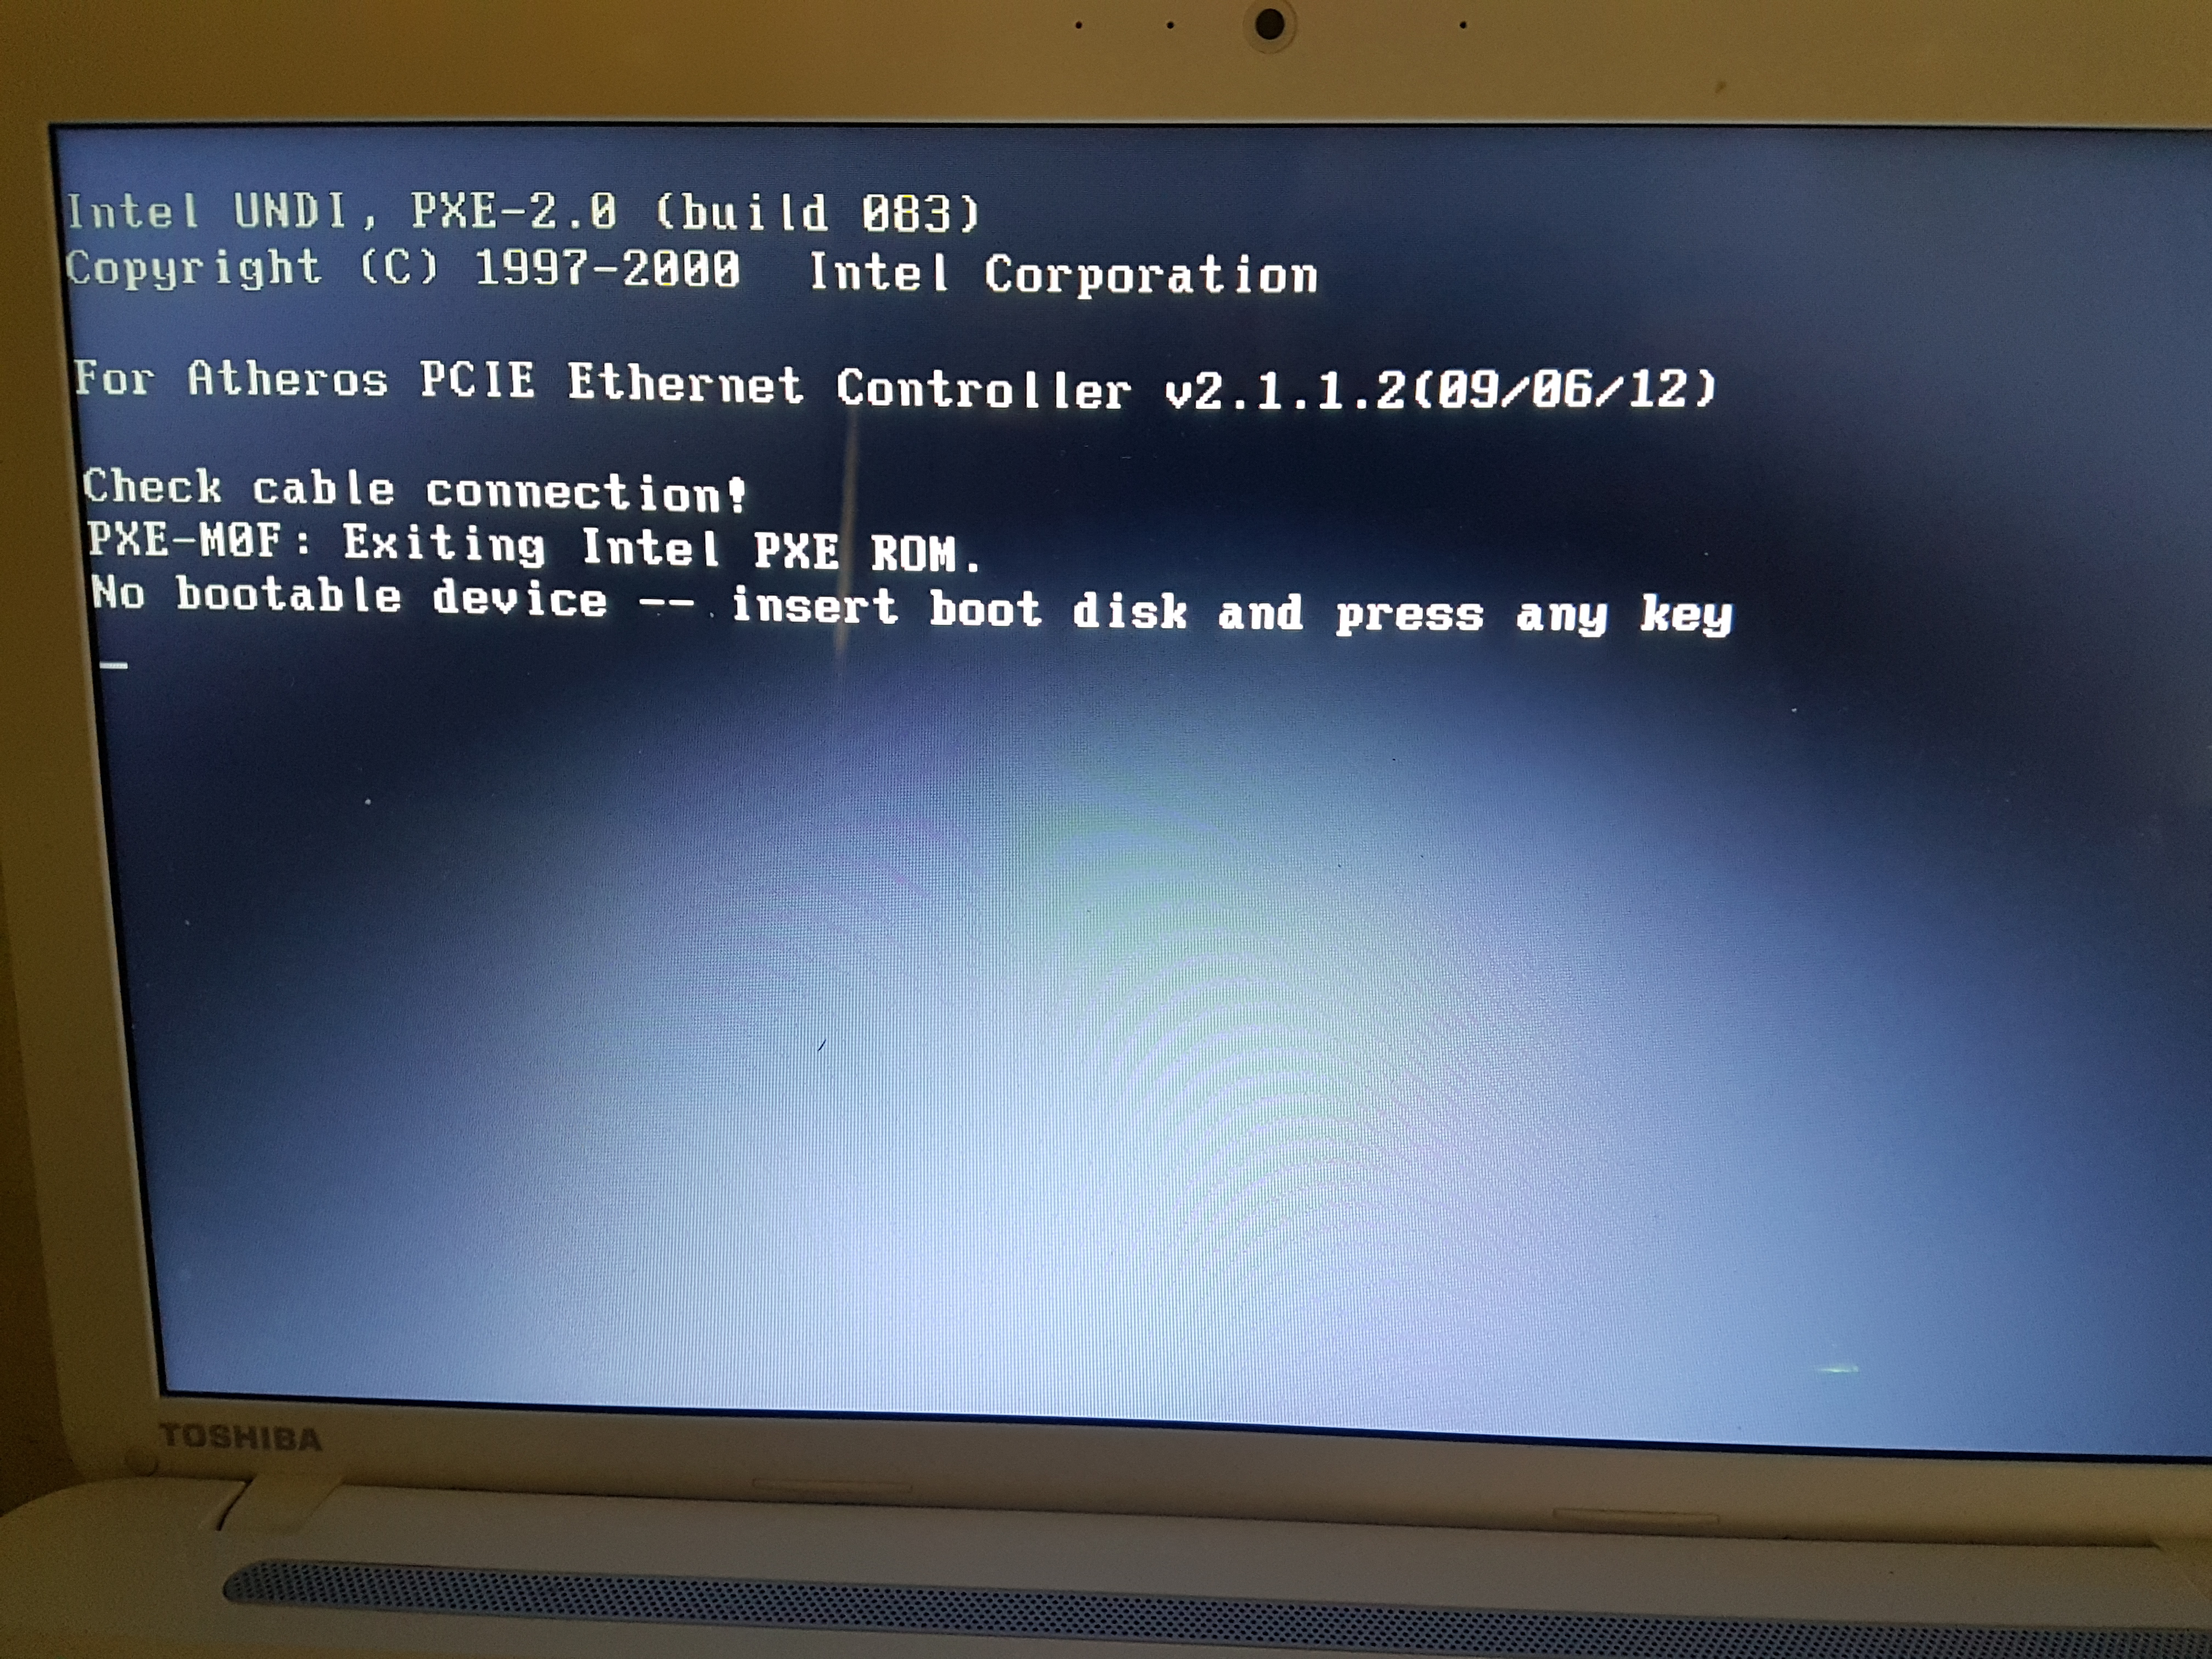 Insert Boot Disk And Press Any Key Hp Laptop - Best Image About